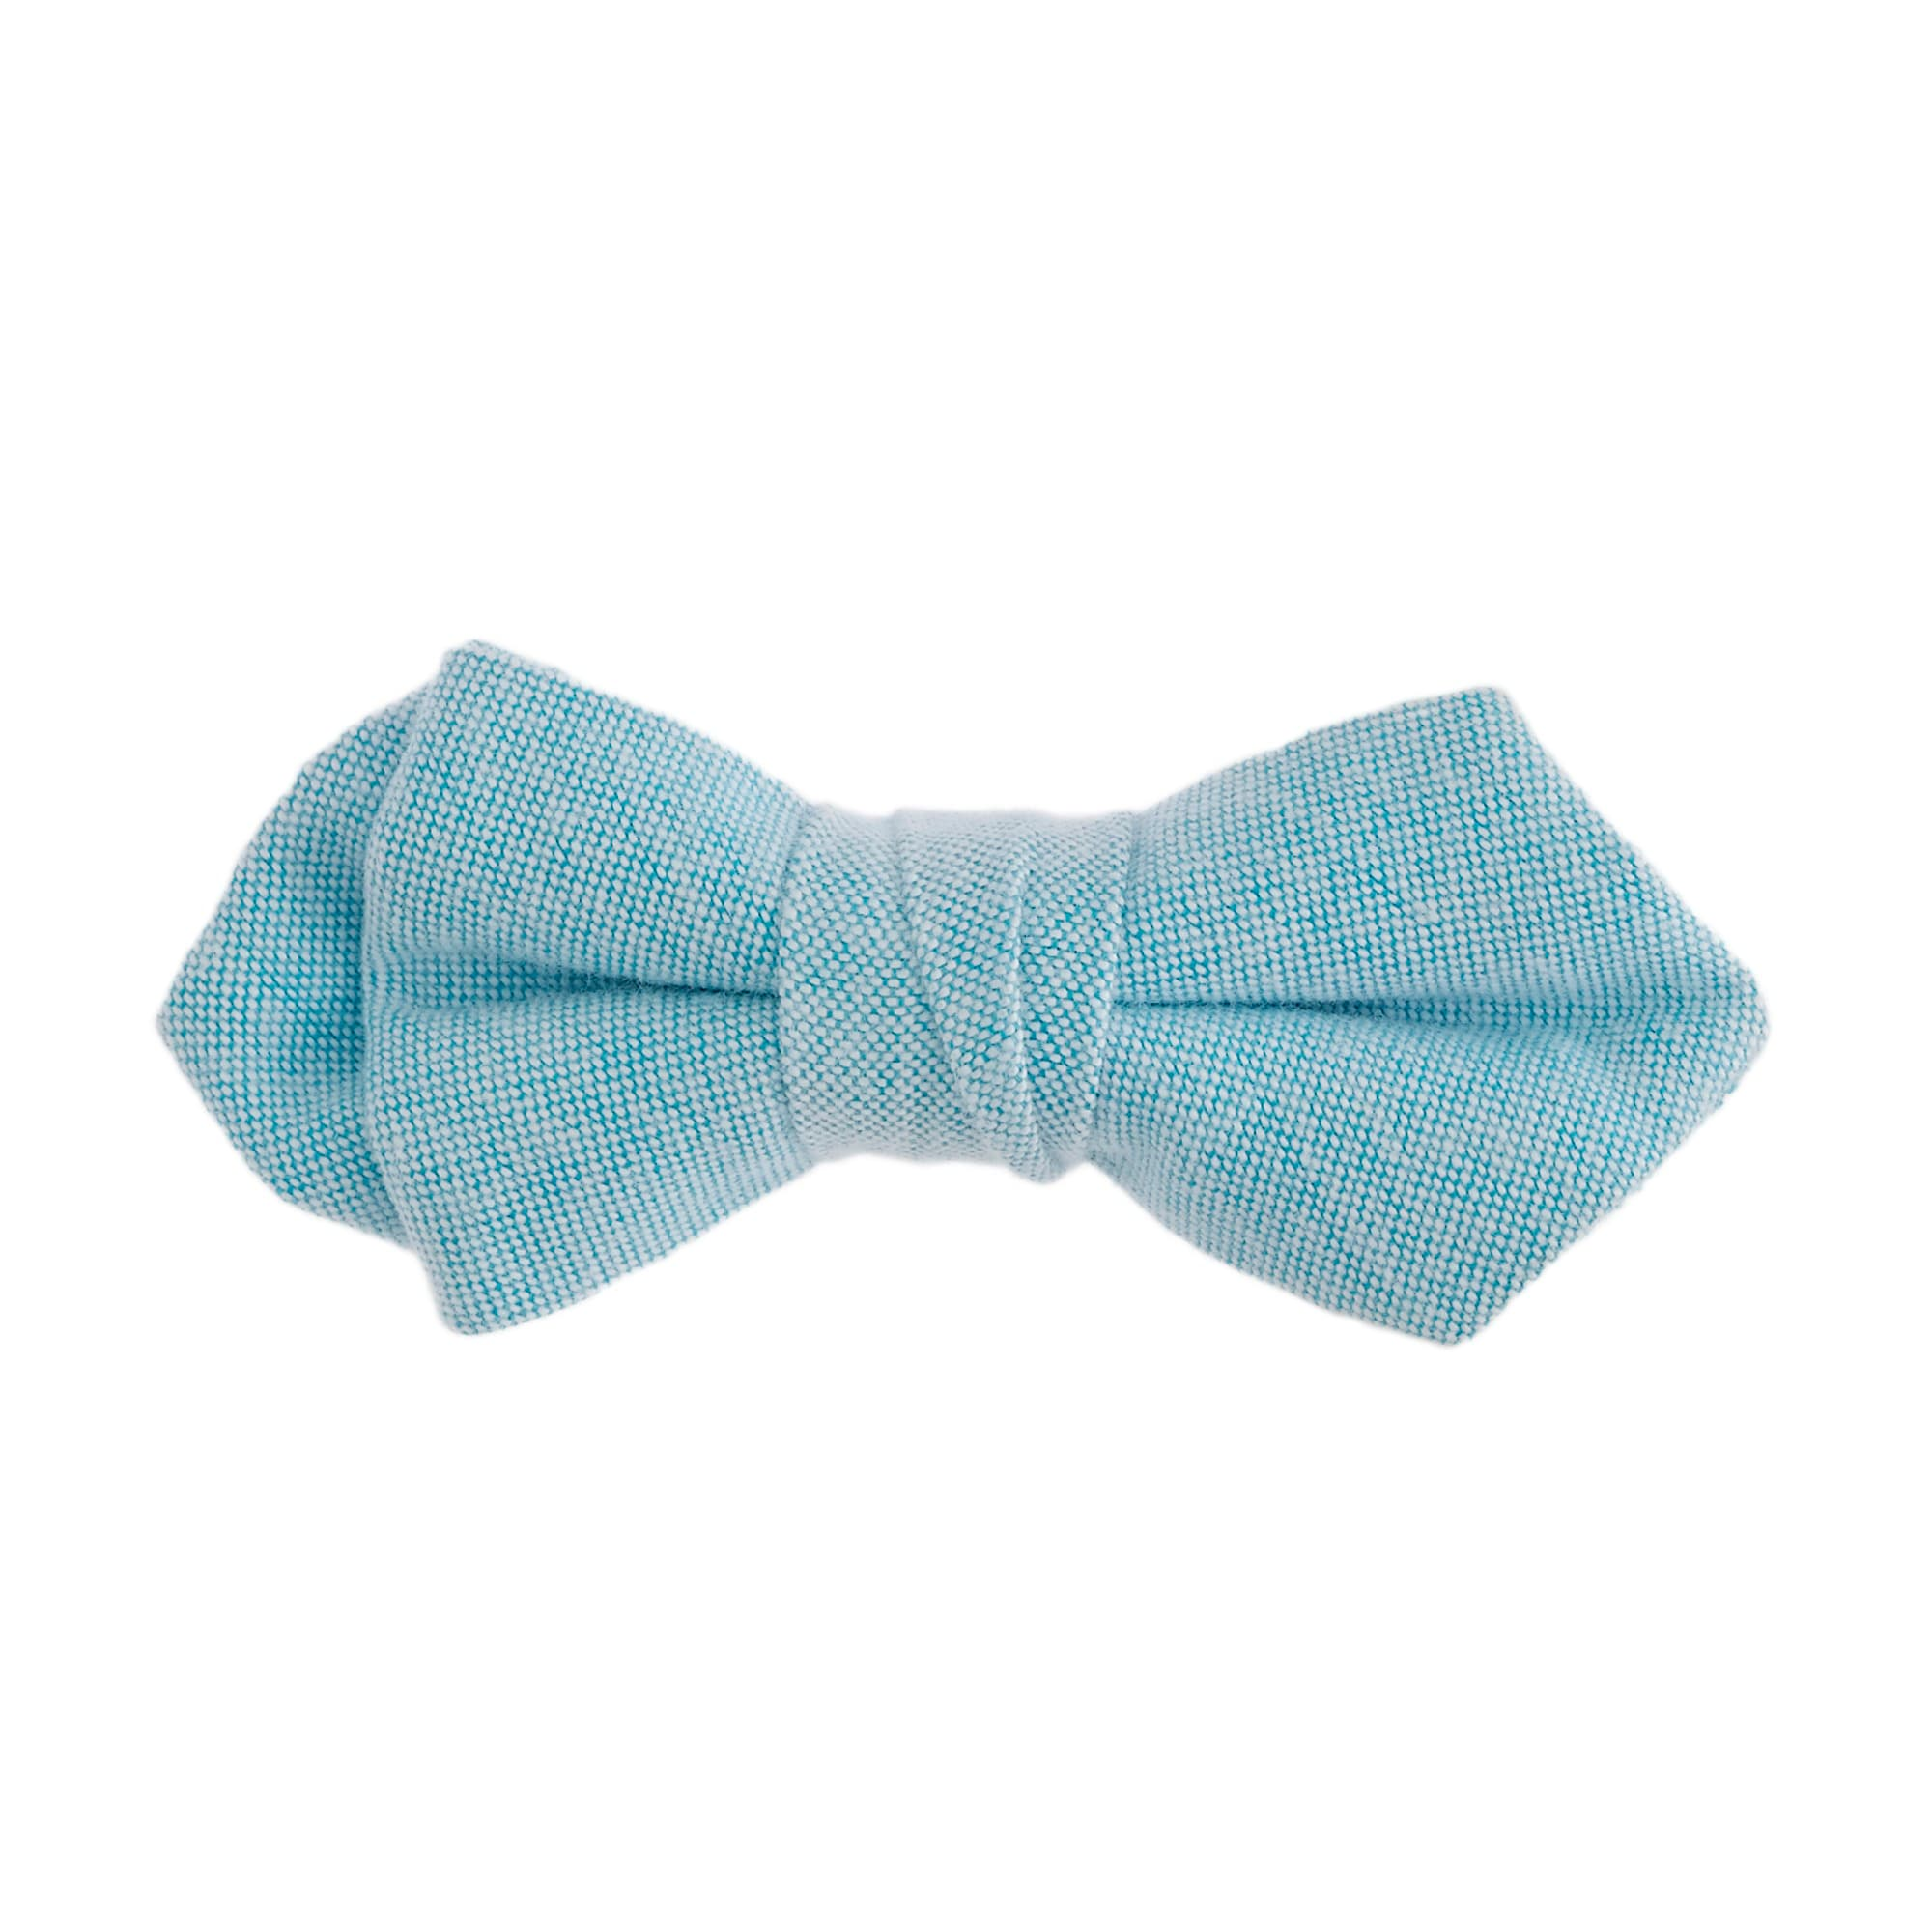 Boys' bow tie in cotton oxford